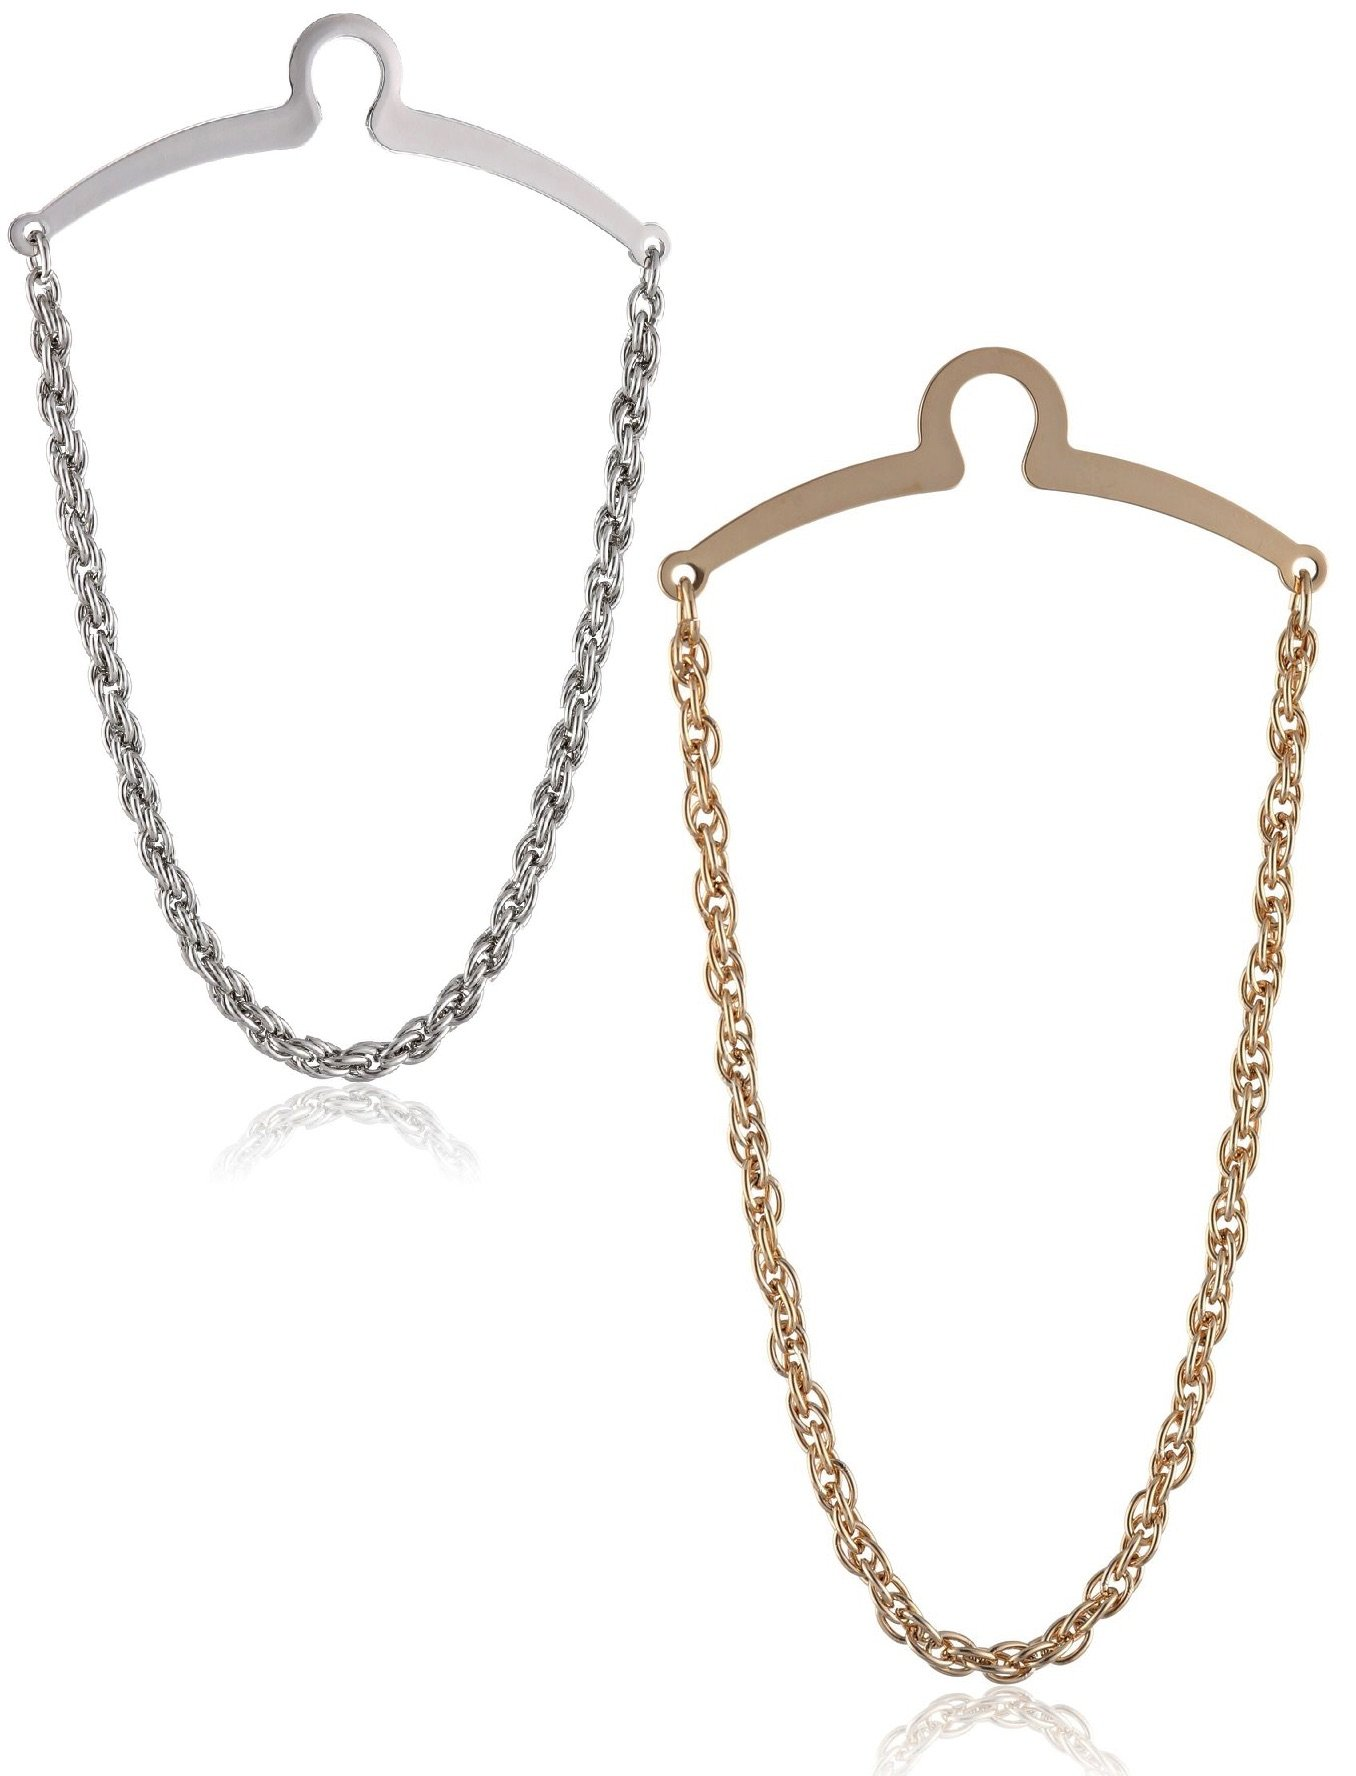 2 Pc Premium Tie Chain Set, Silver and Gold Tone Gift Boxed